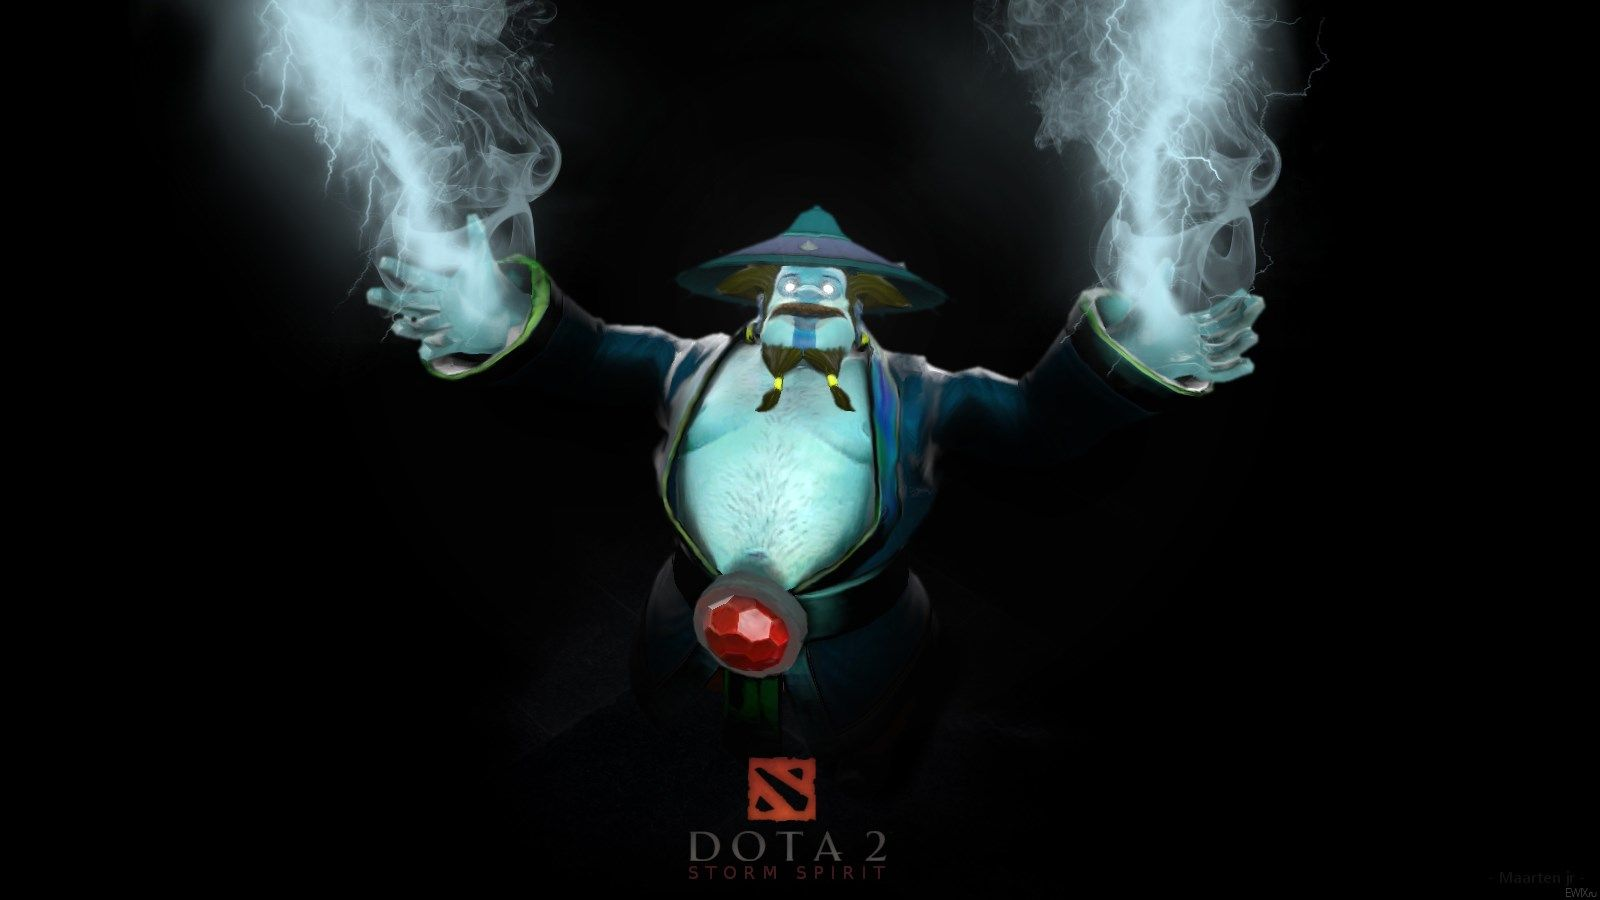 1600x900 Storm Spirit Dota 2 Wallpaper Hd Dota In 2018